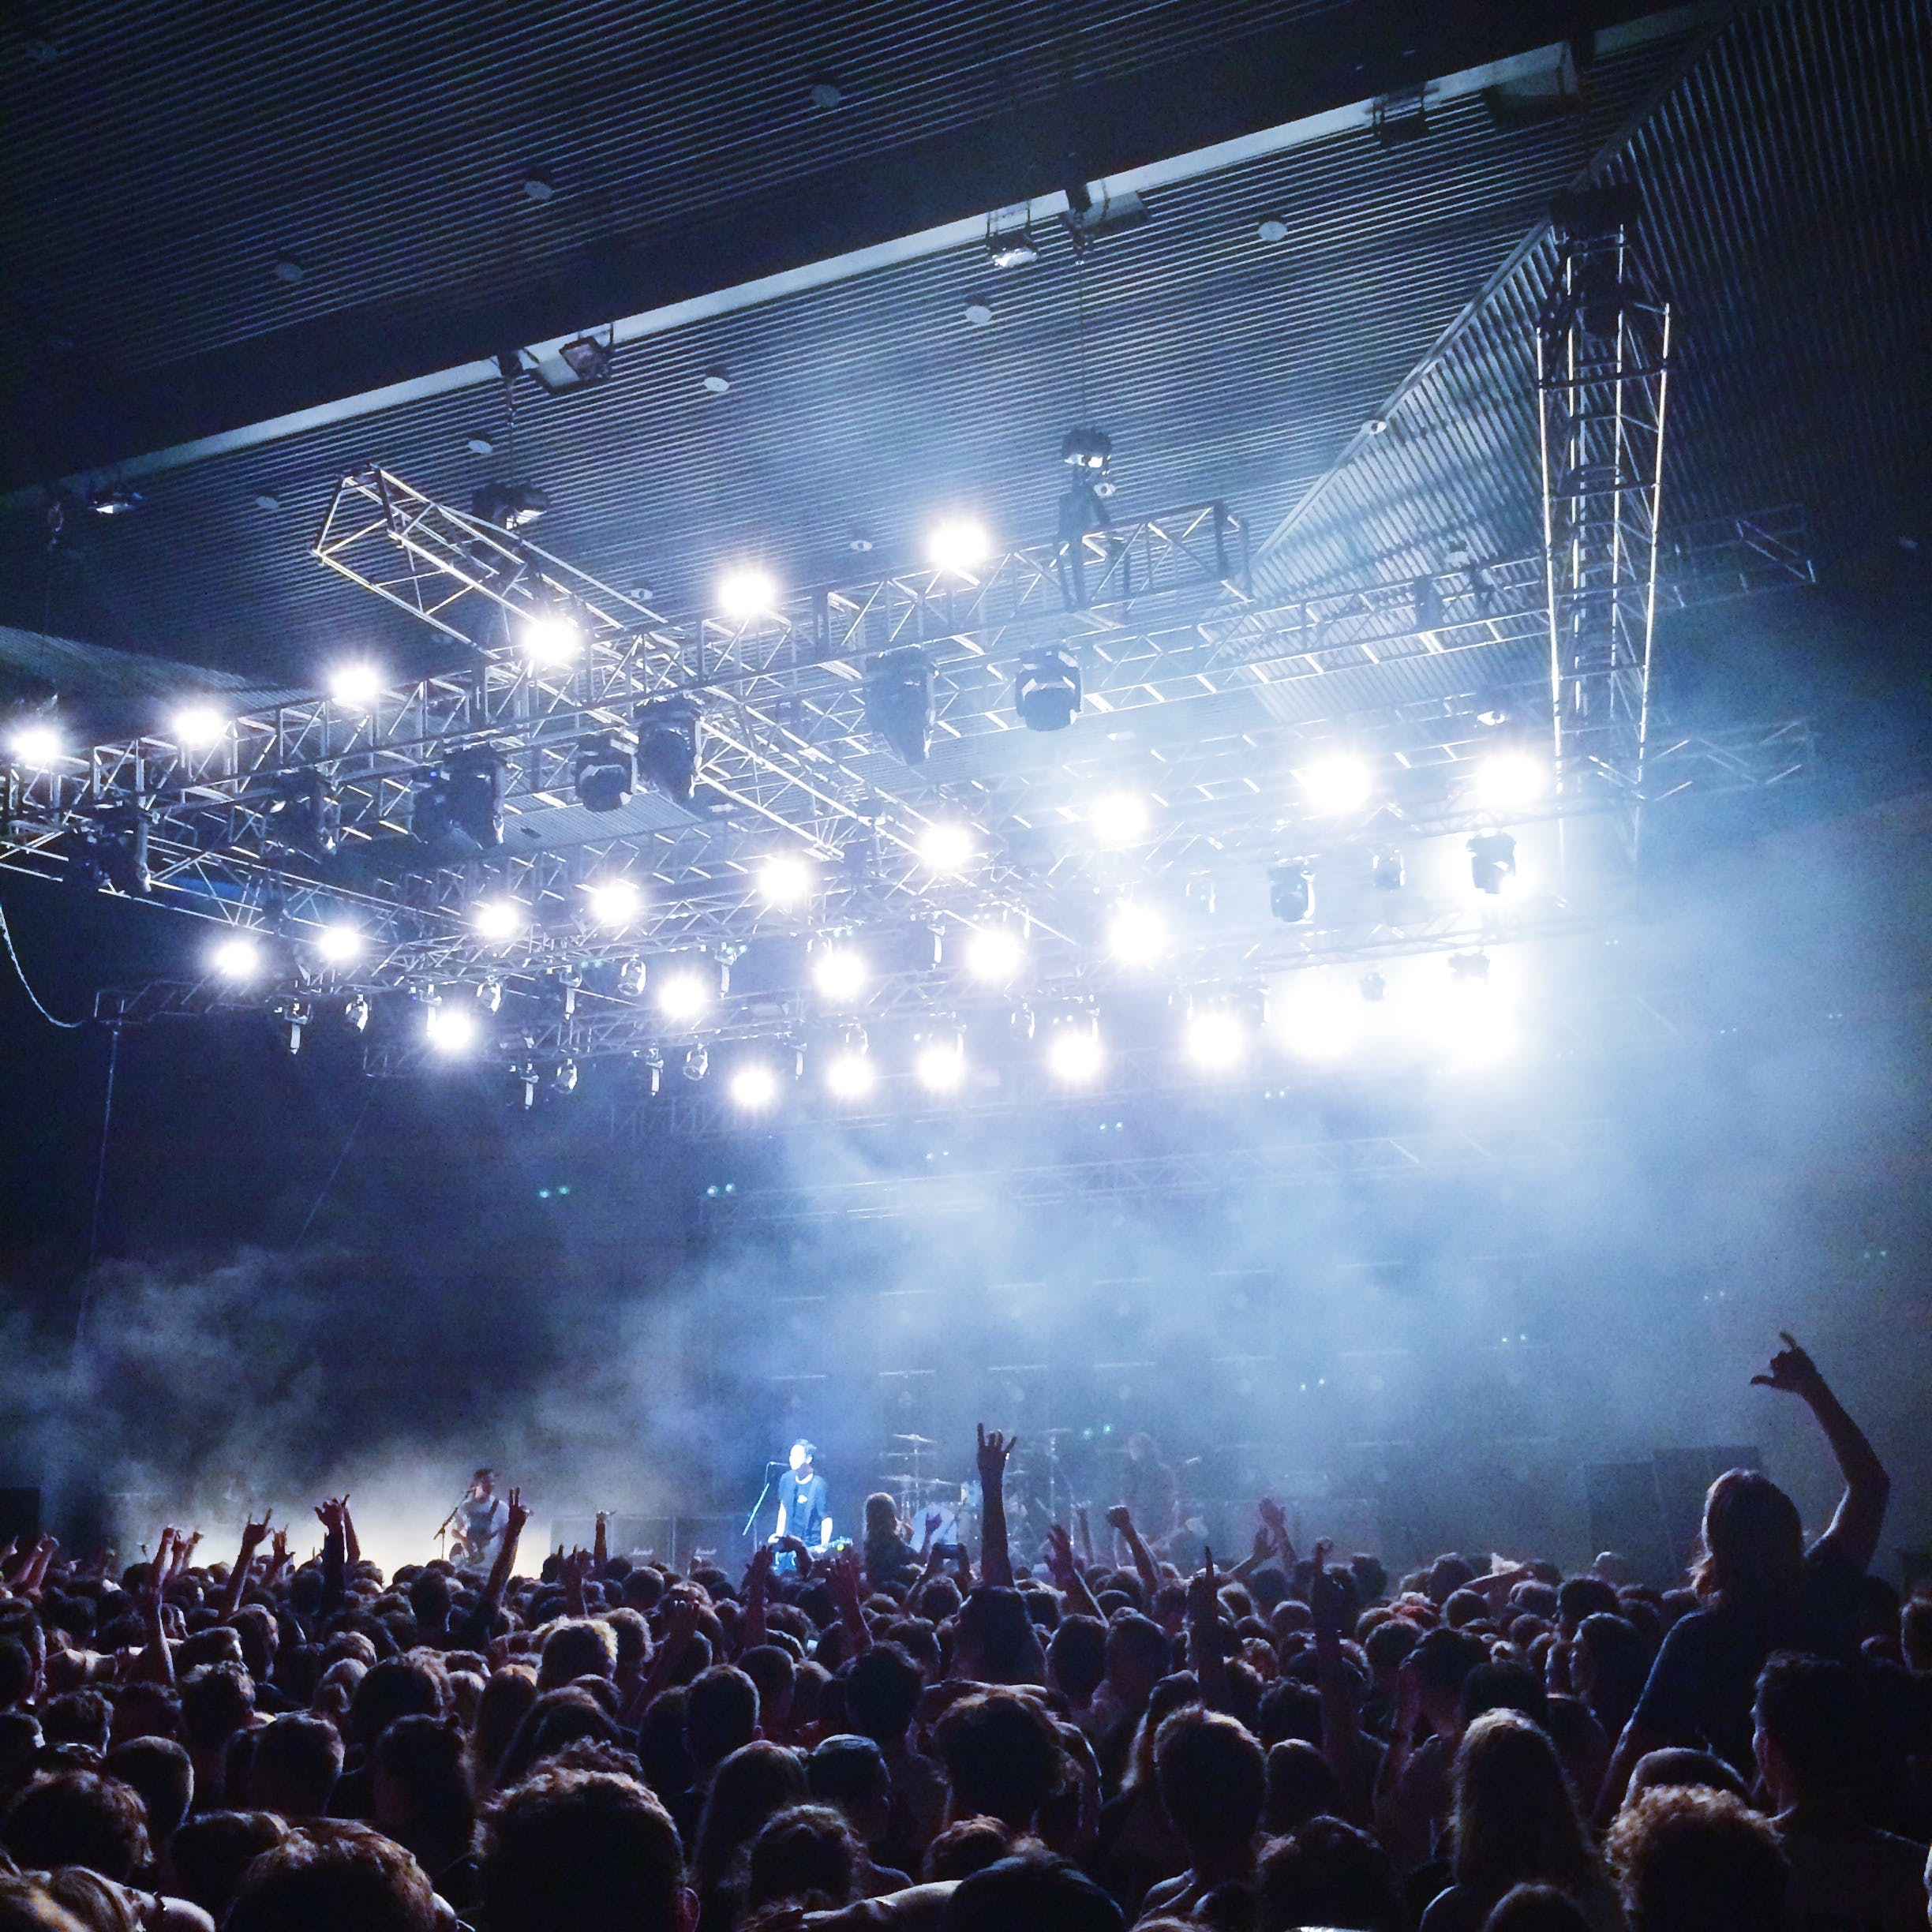 Free stock photo of concert, crowd, music, people